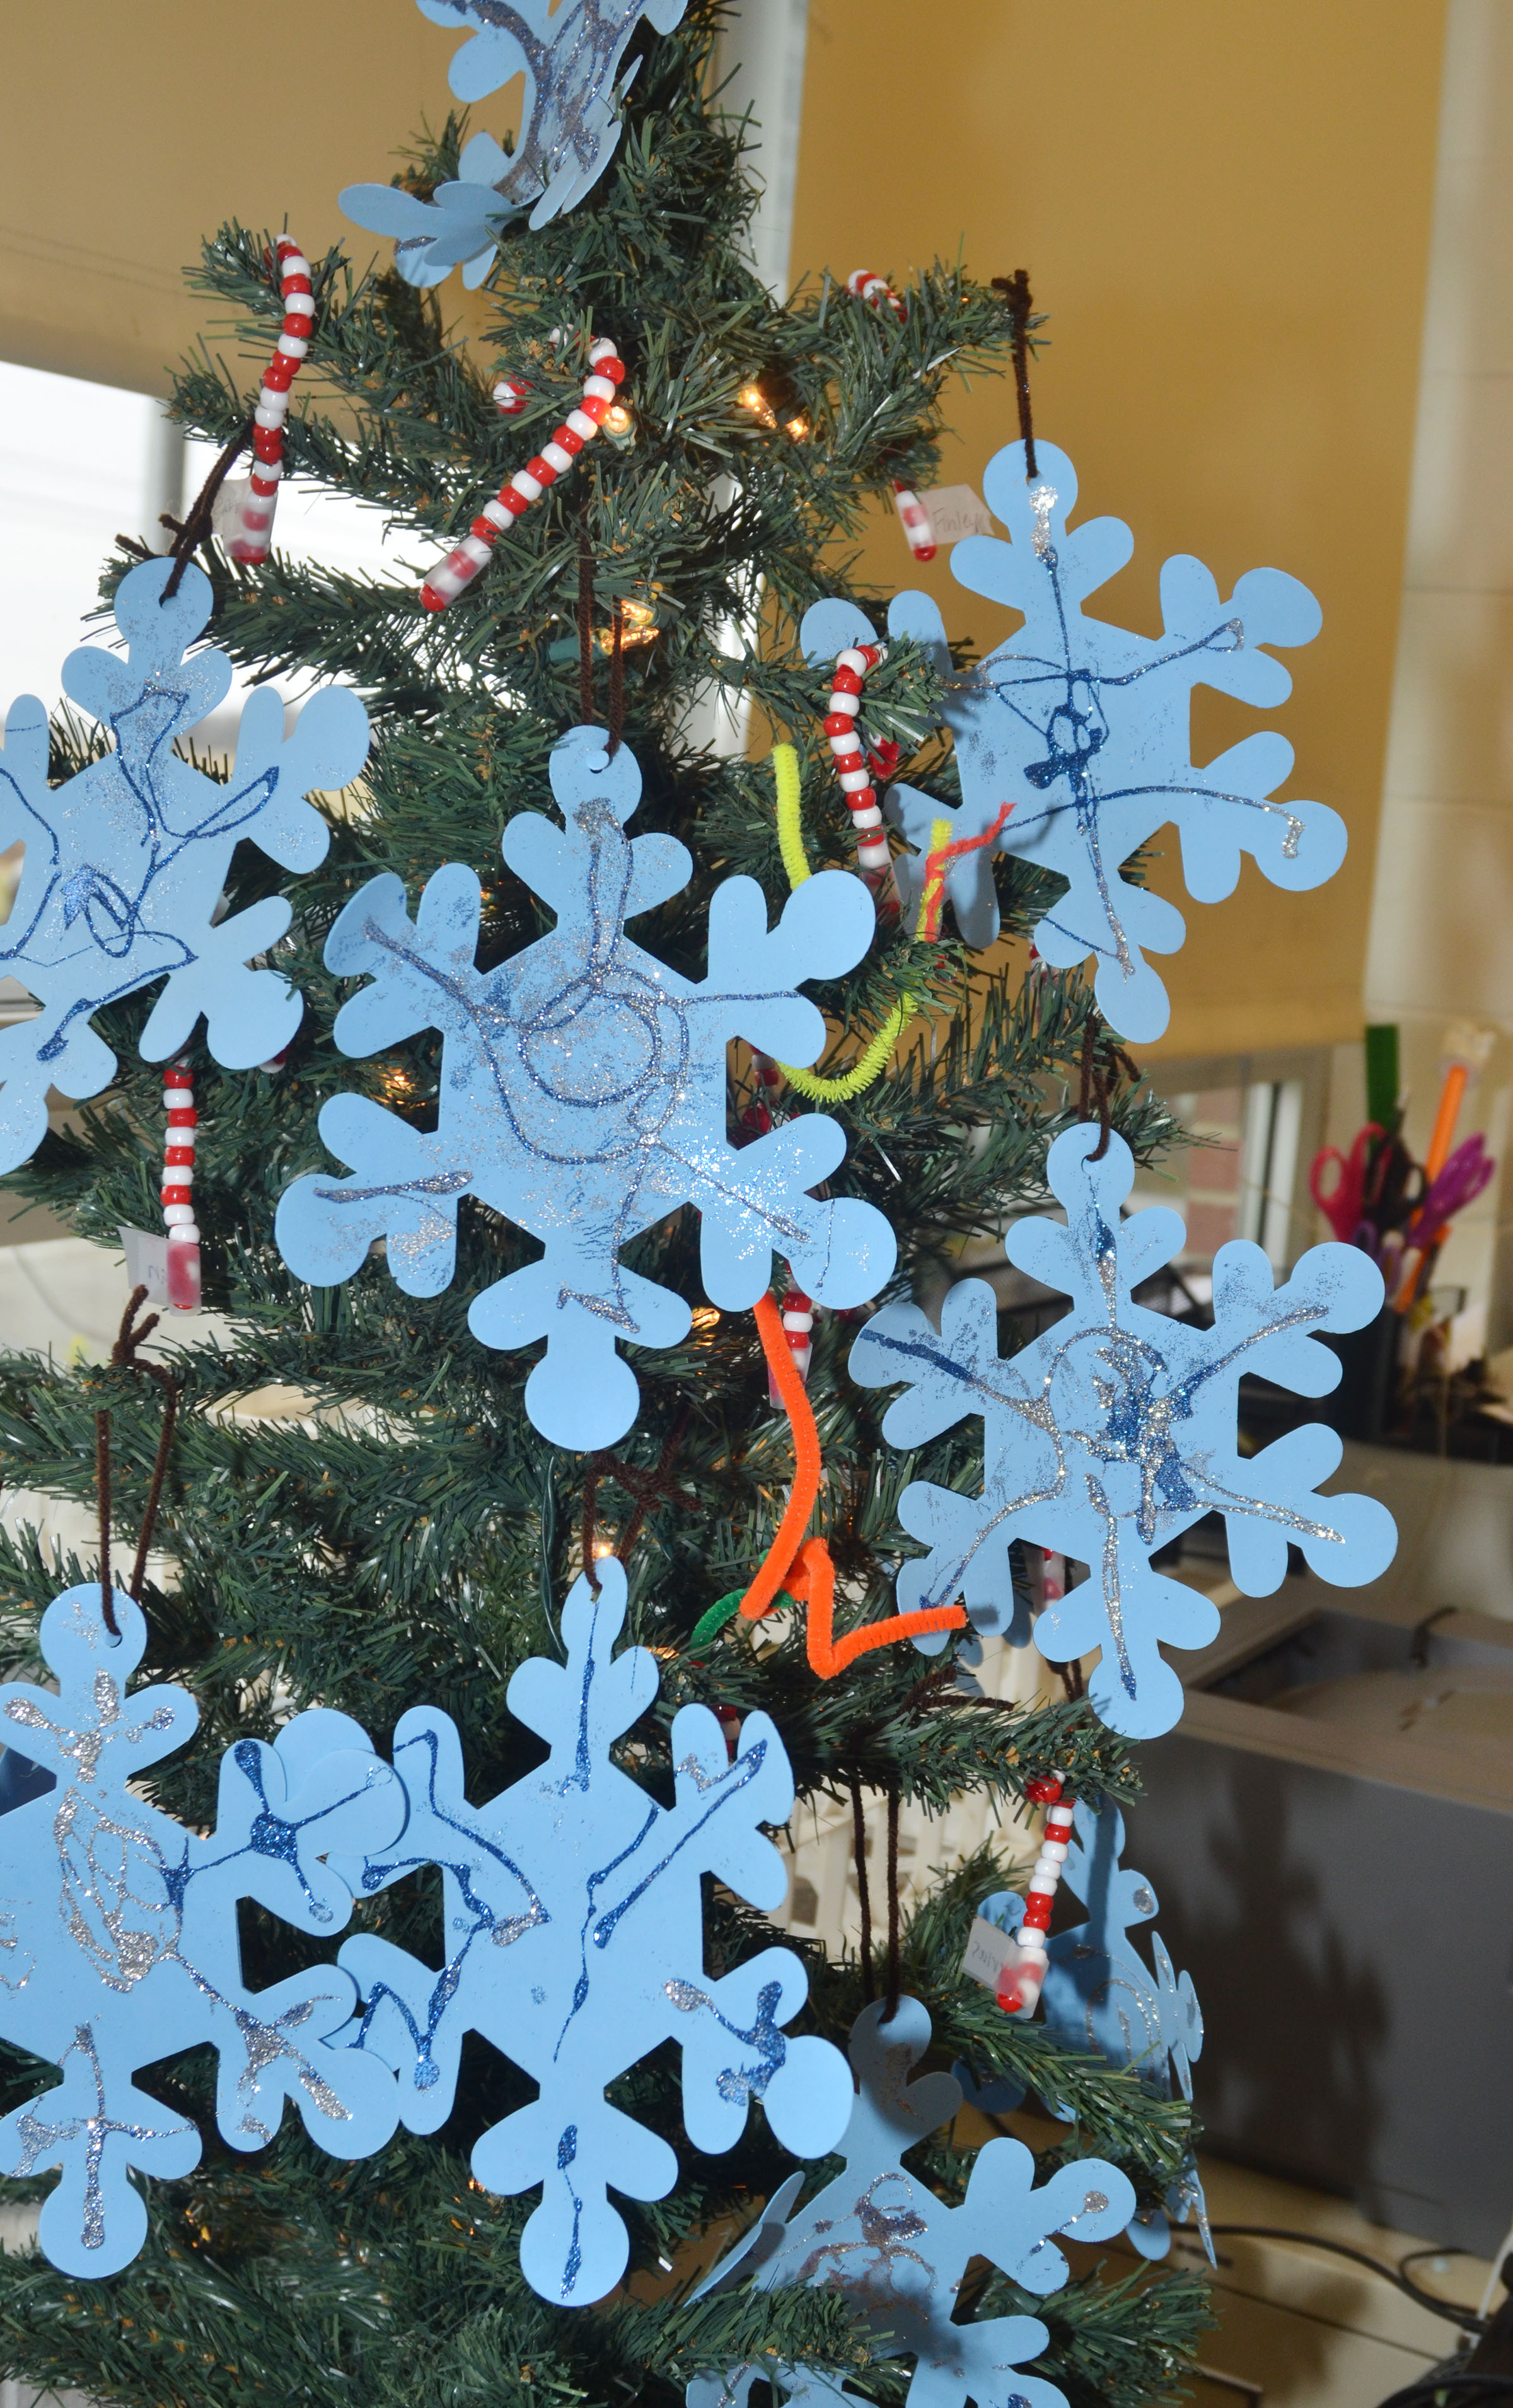 CES preschool students made snowflake, candy cane and other ornaments for their Christmas tree.